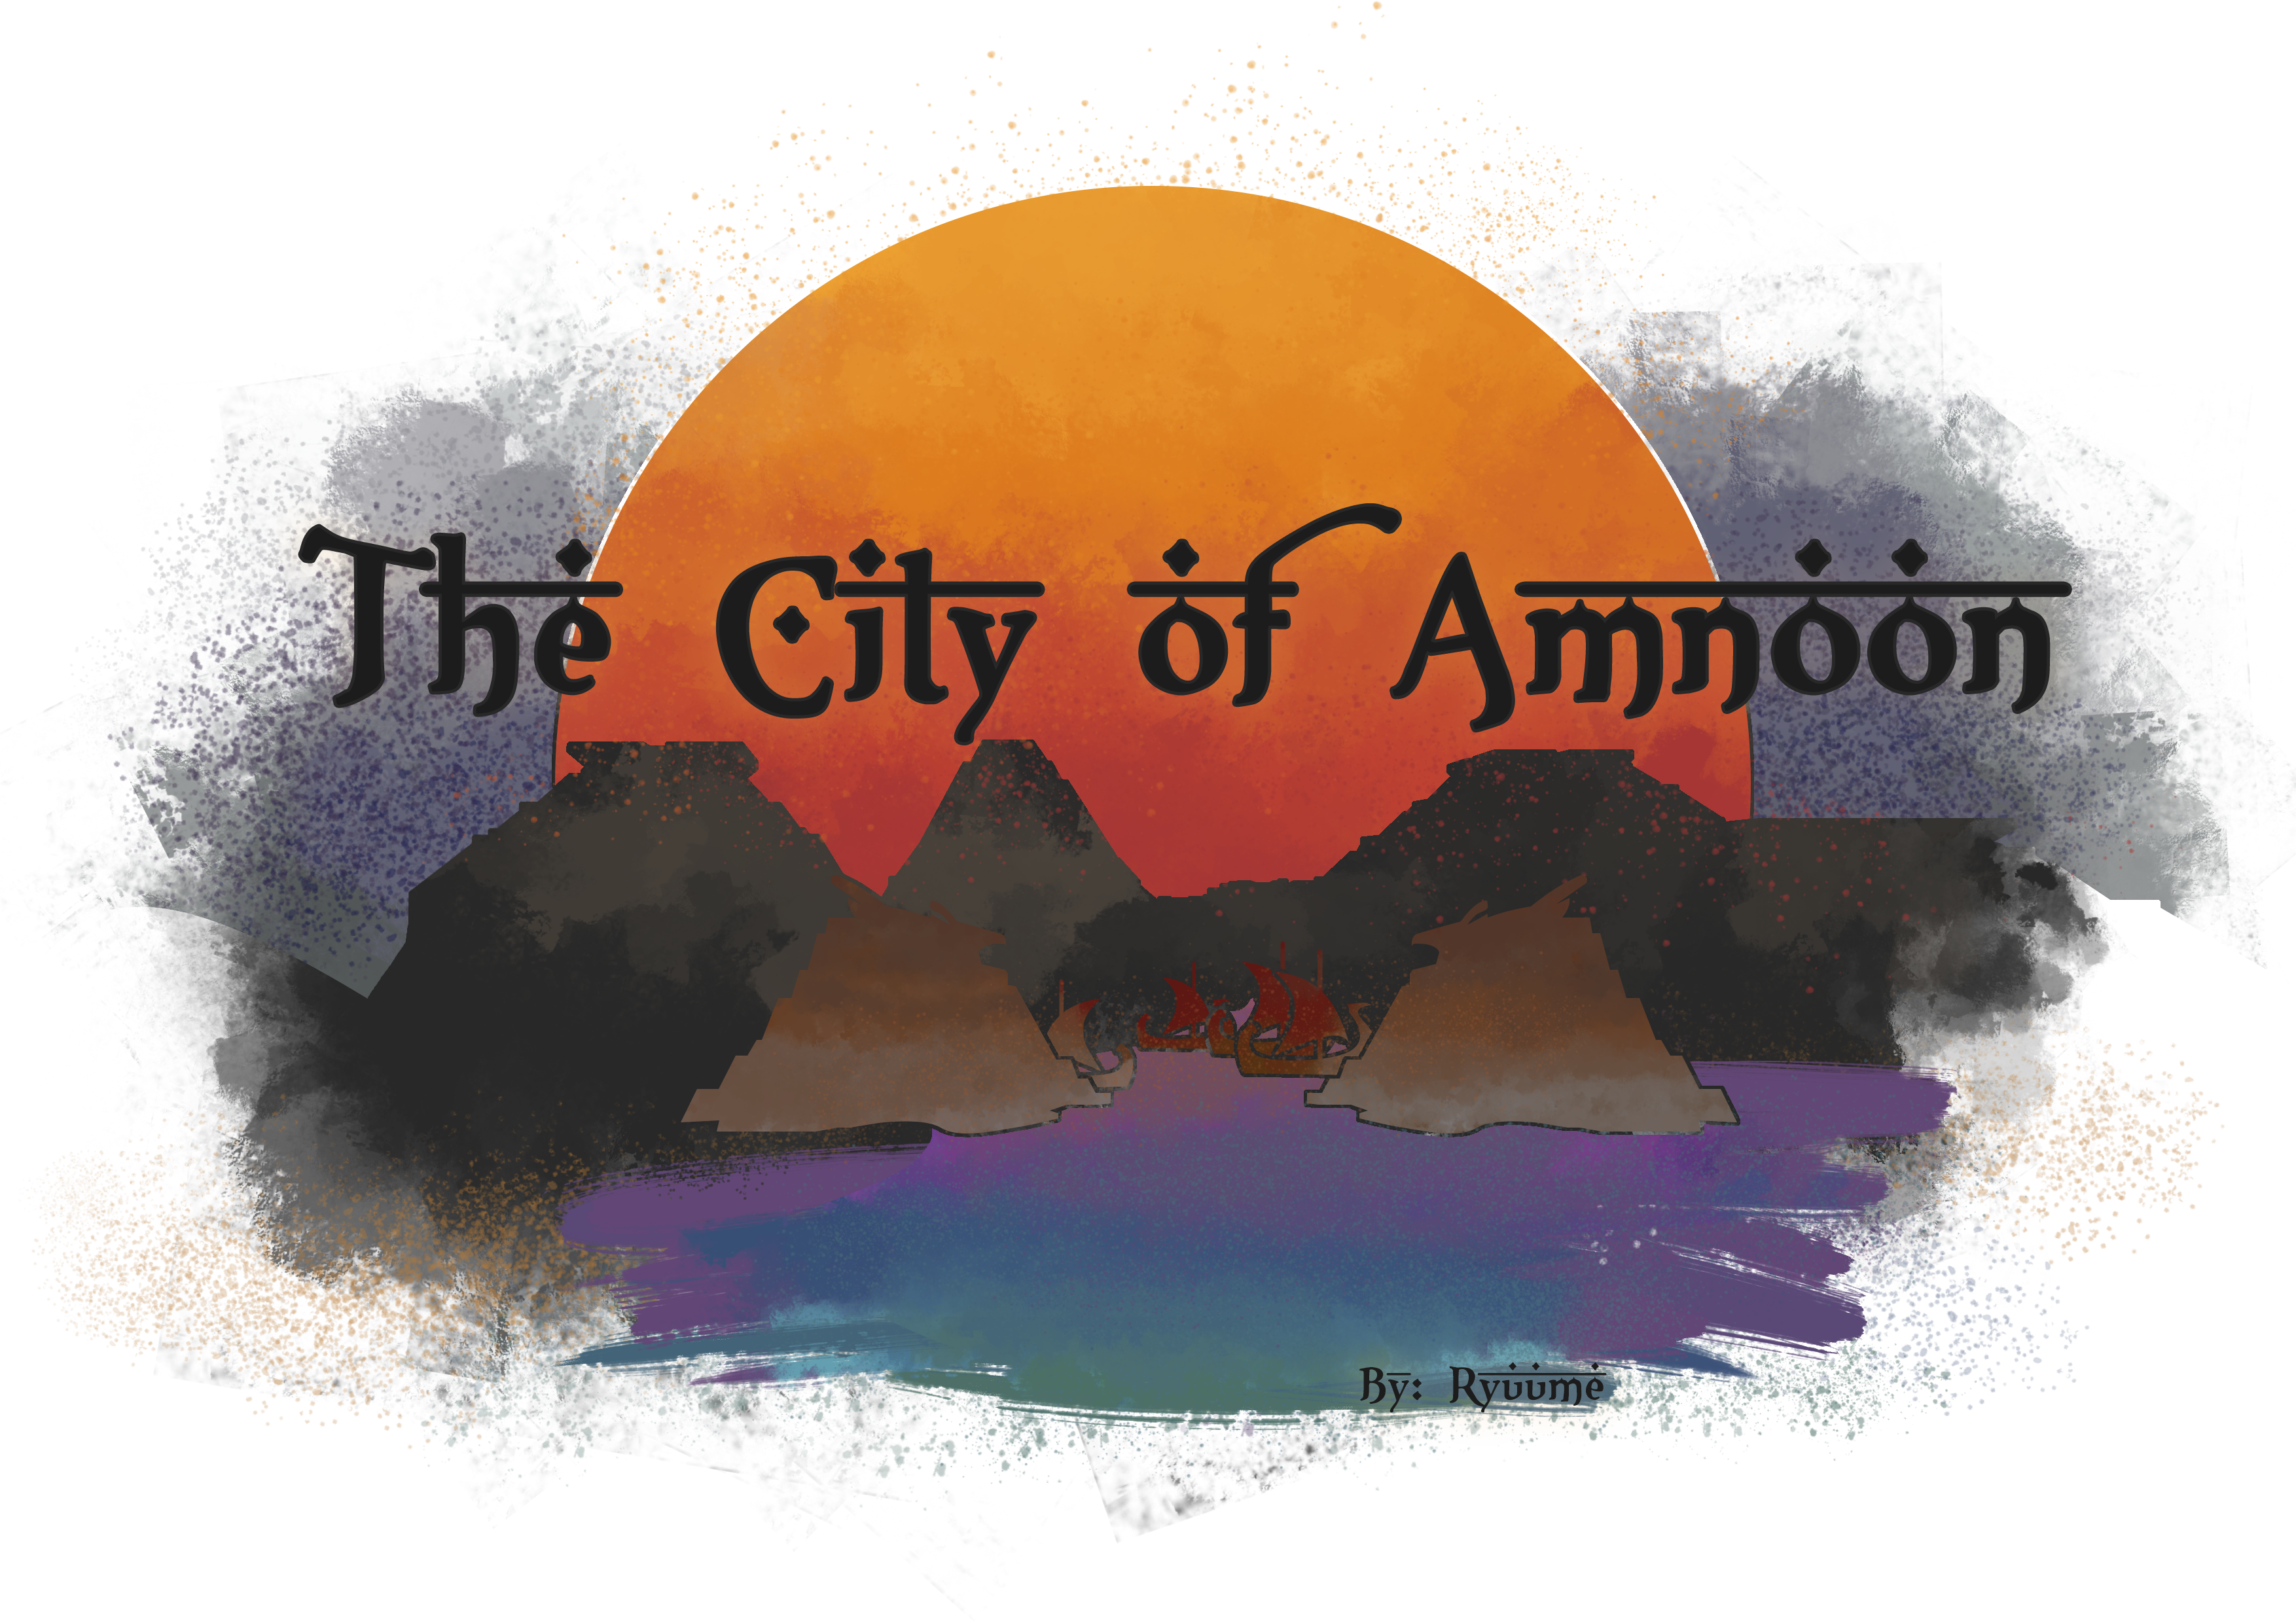 The City of Amnoon [TCA]